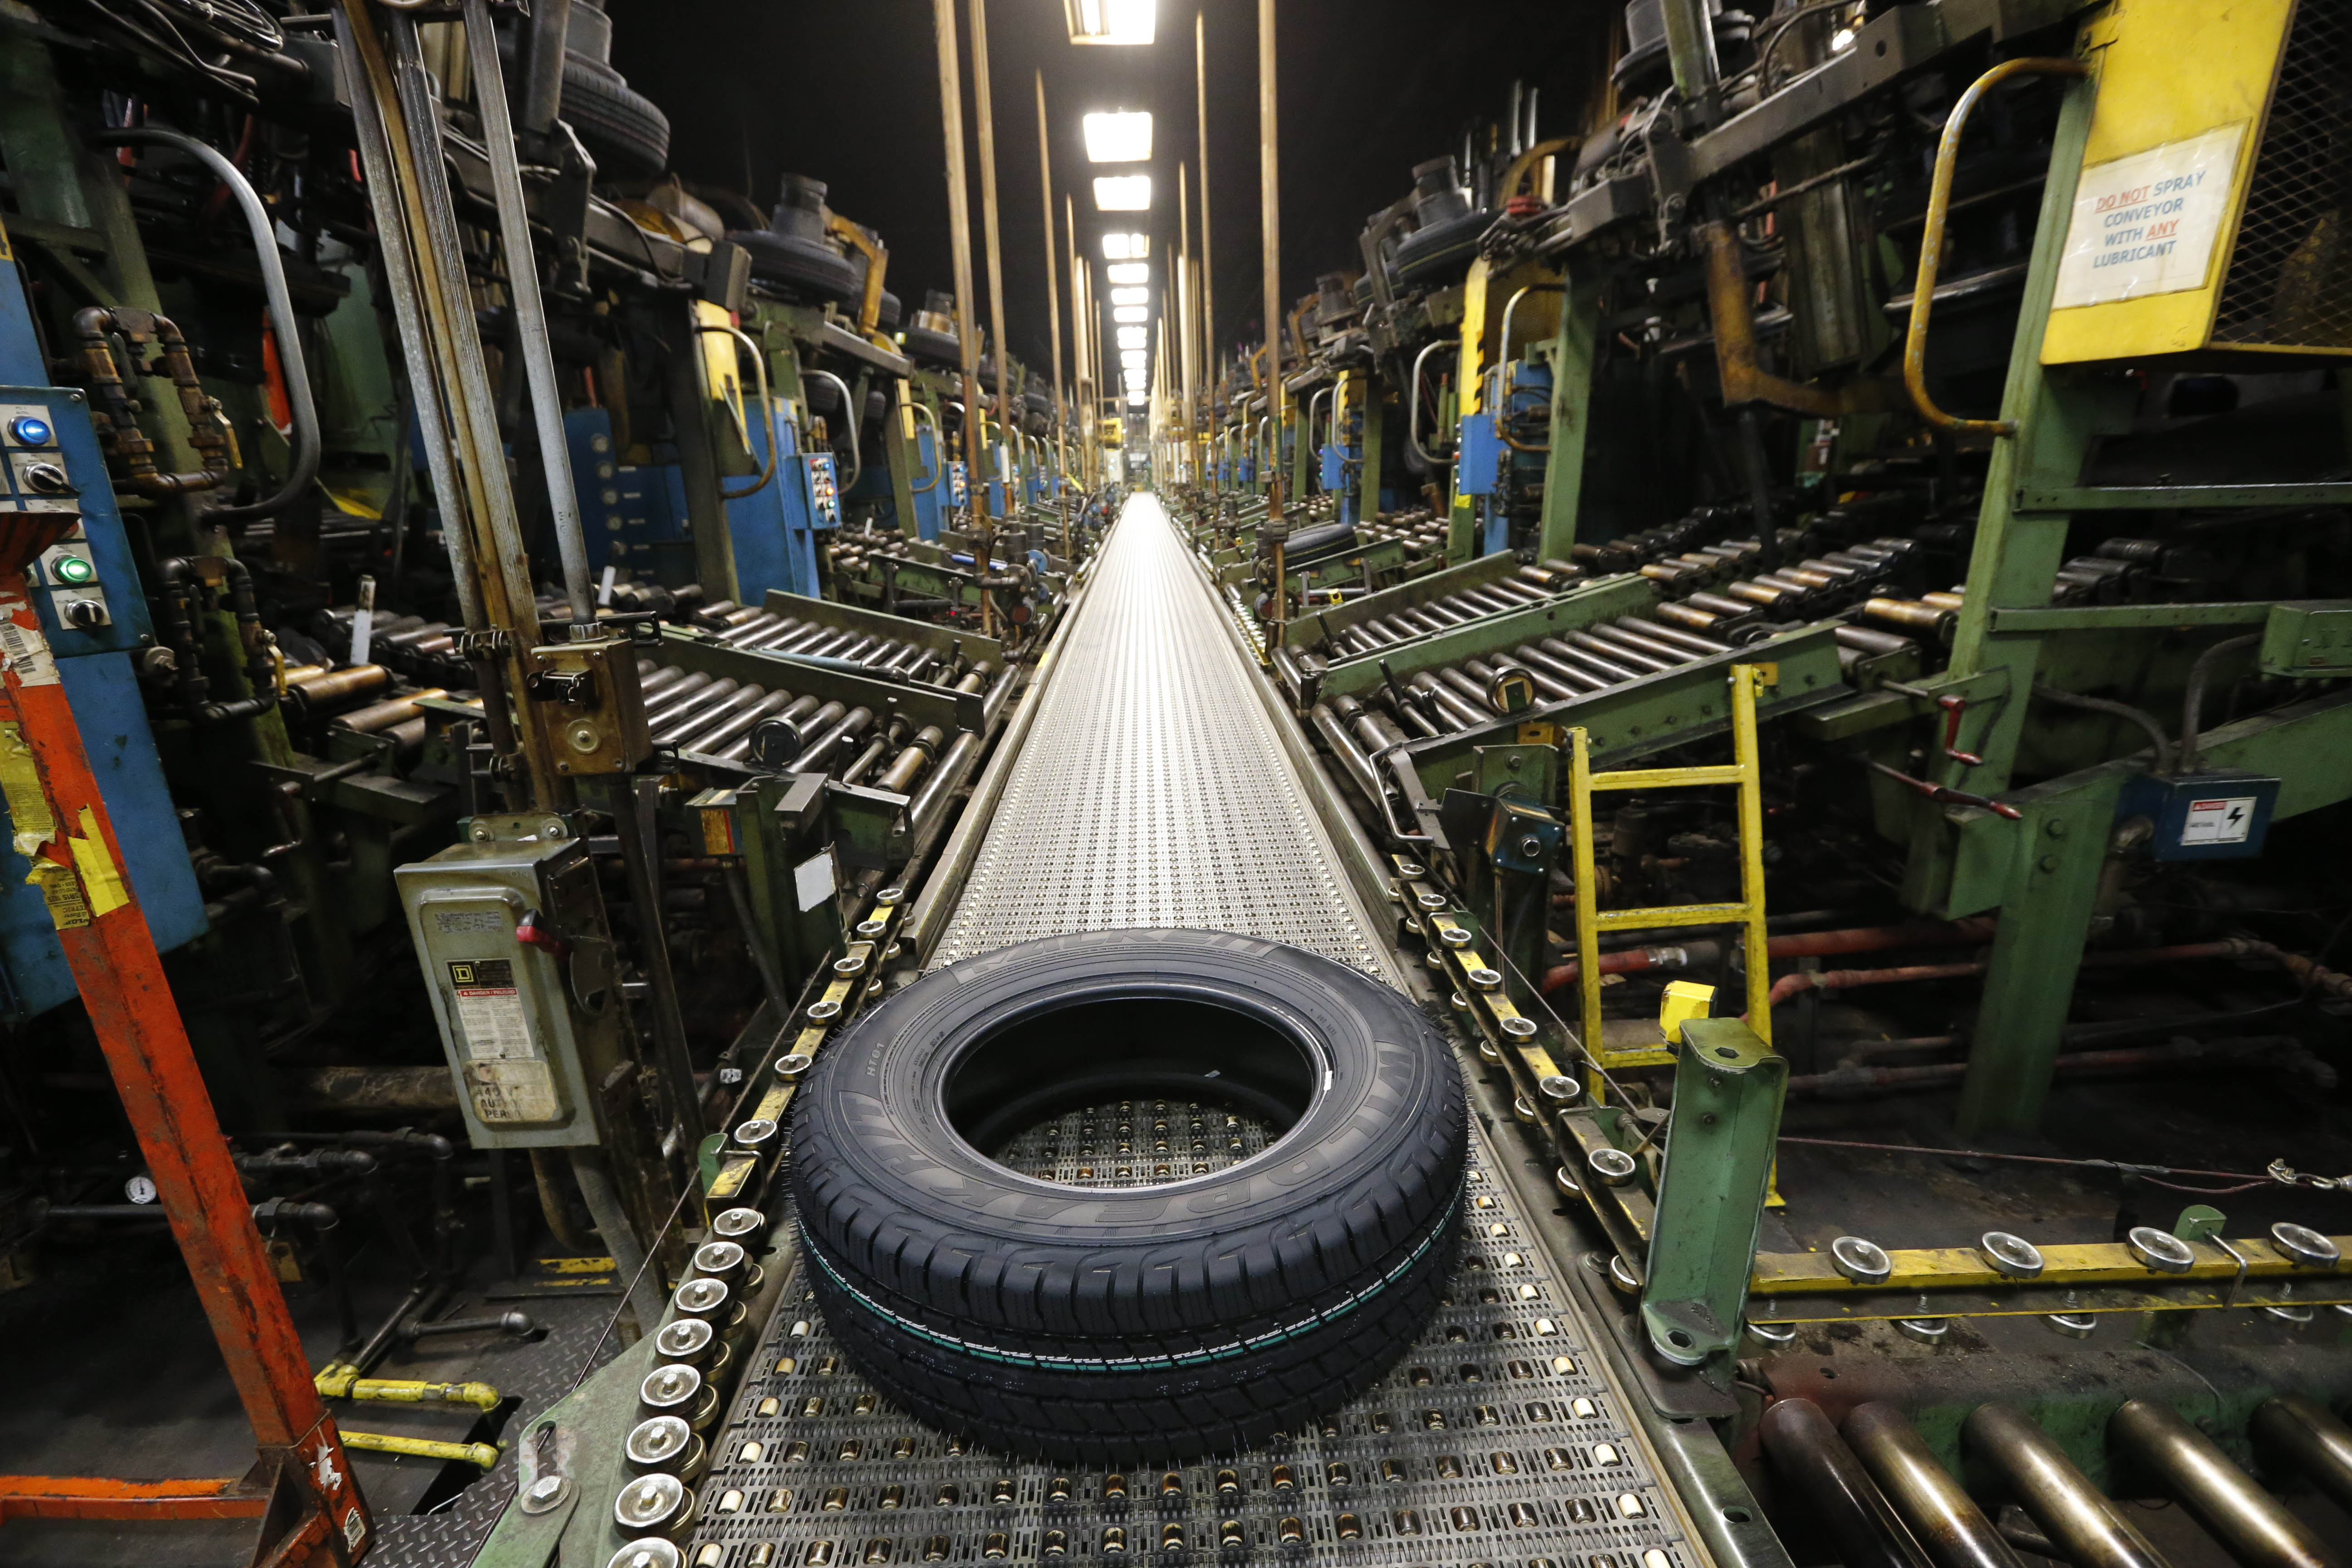 A new Falken tire comes off the curing line last November at the Sumitomo Rubber USA tire manufacturing plant in the Town of Tonawanda.  (Derek Gee/Buffalo News file photo)